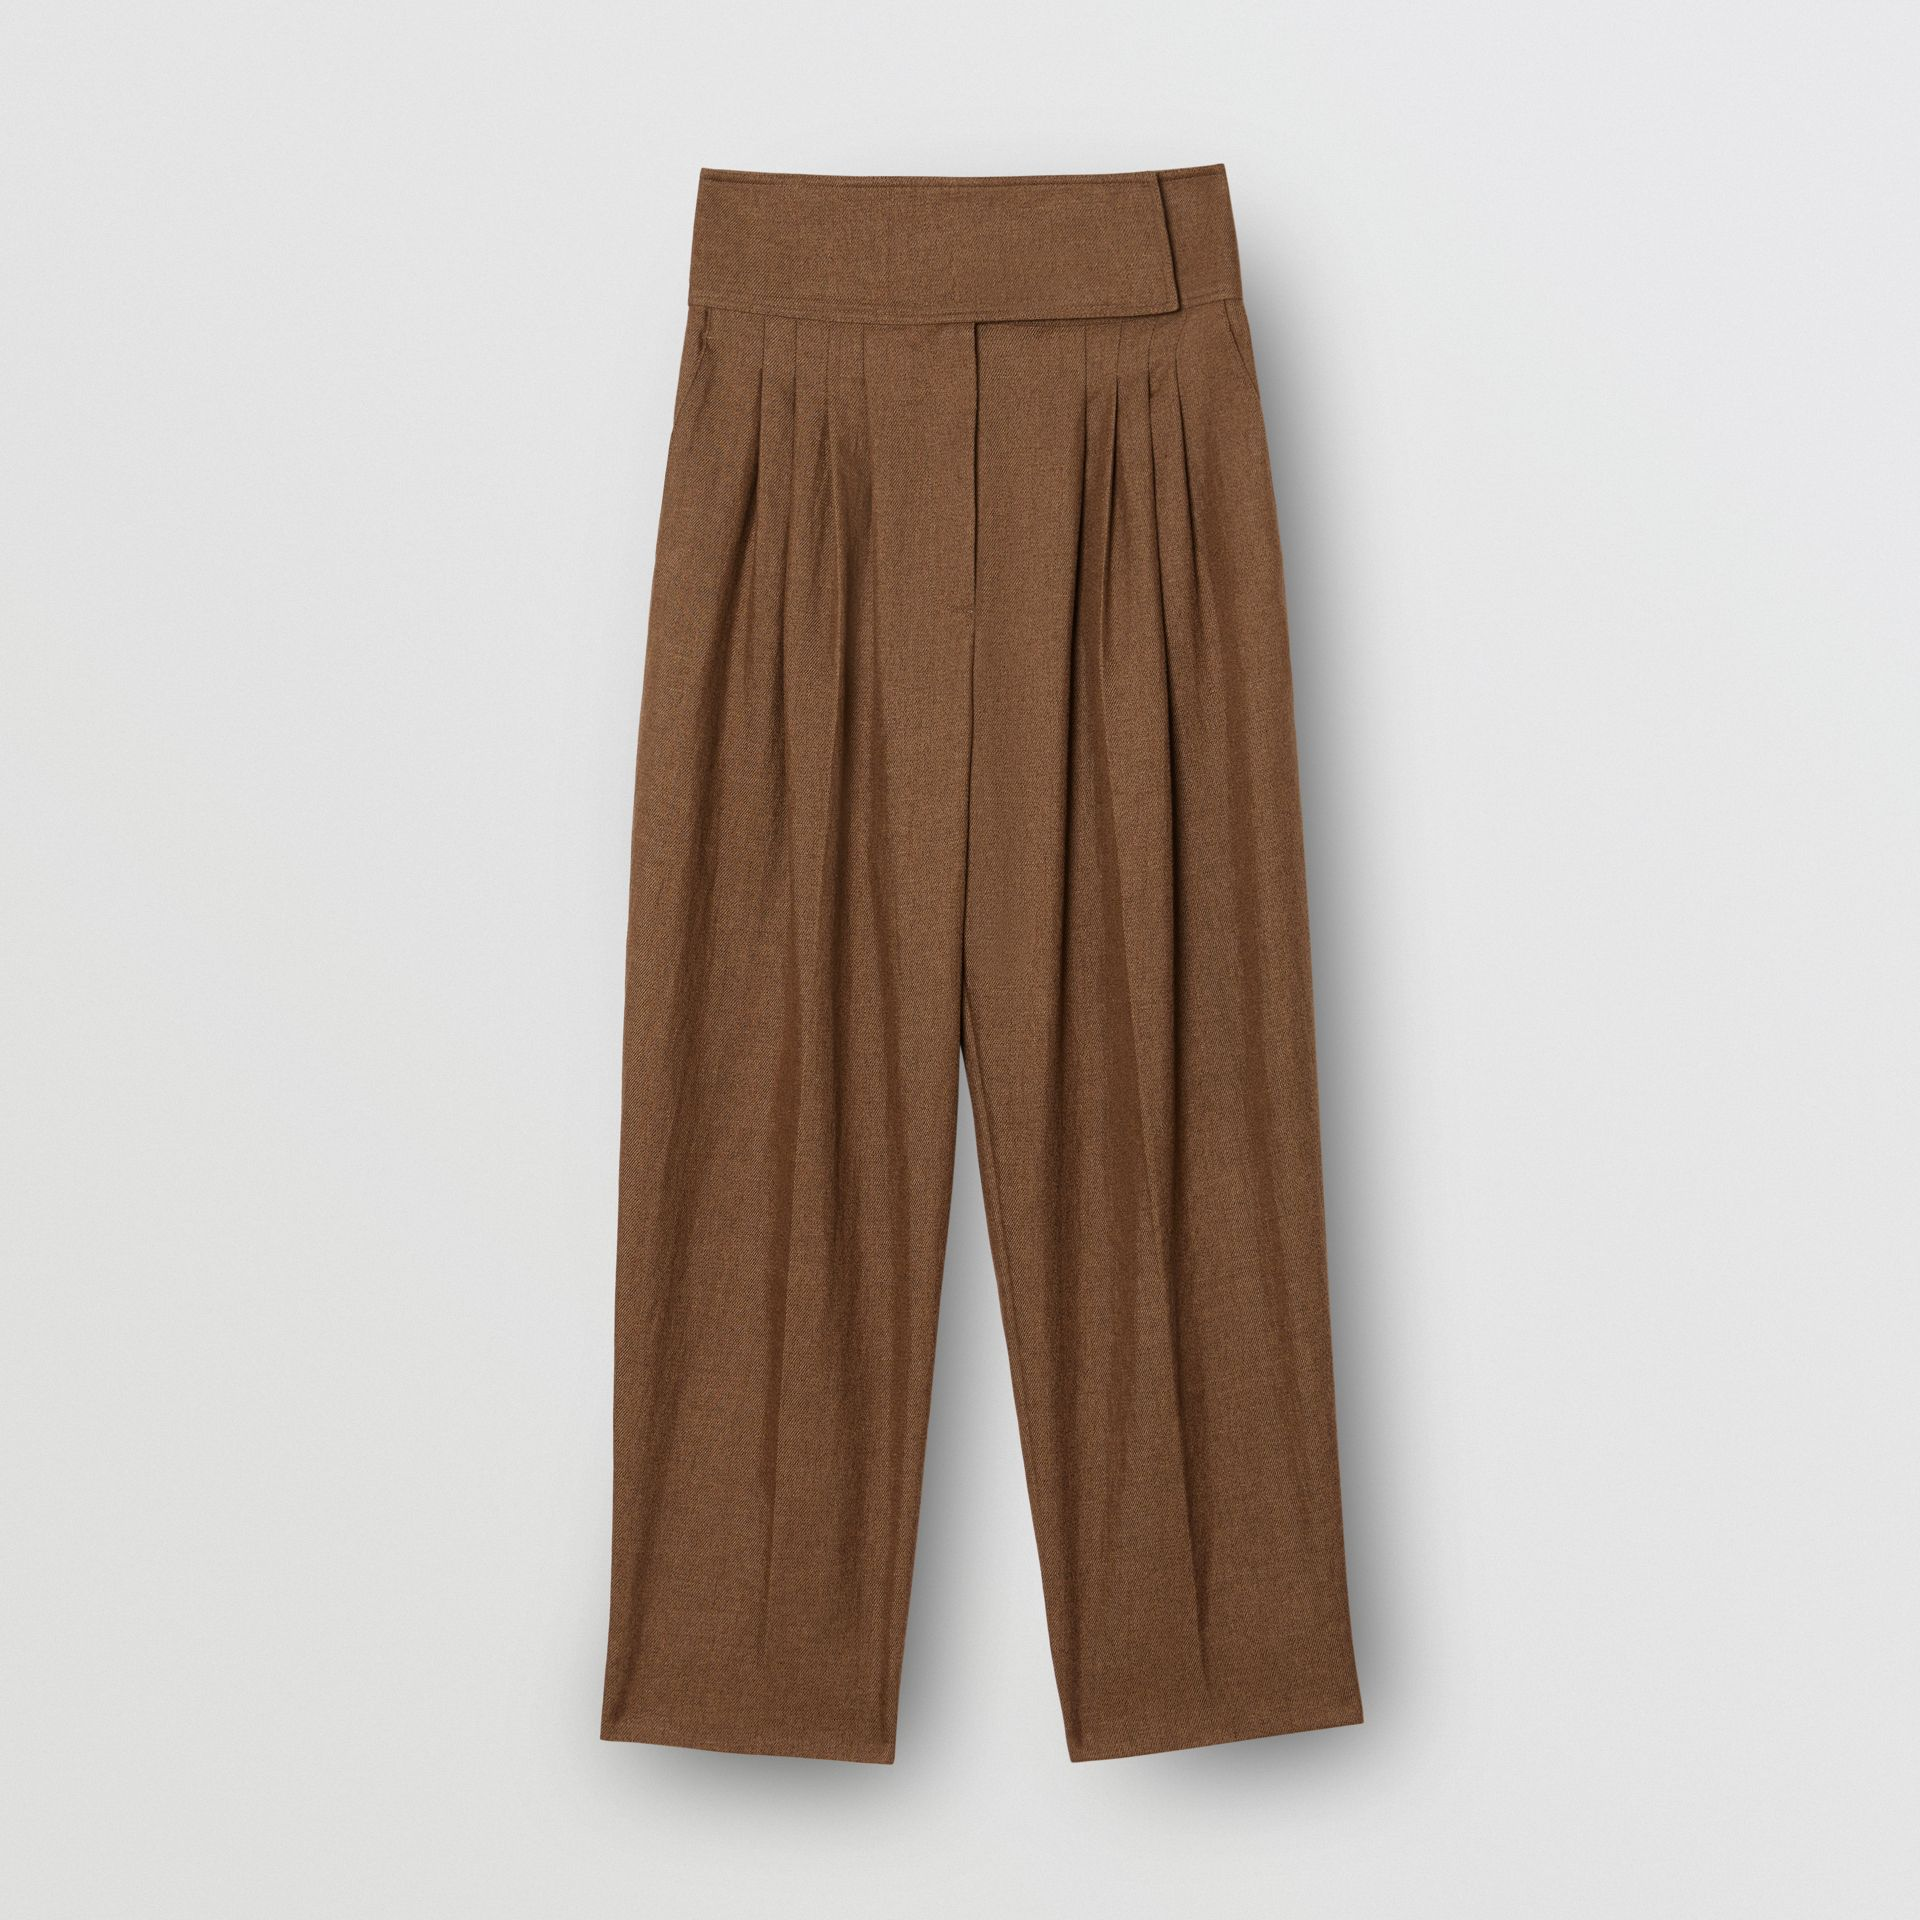 Pleat Detail Technical Linen Tailored Trousers in Flaxseed - Women | Burberry Australia - gallery image 3